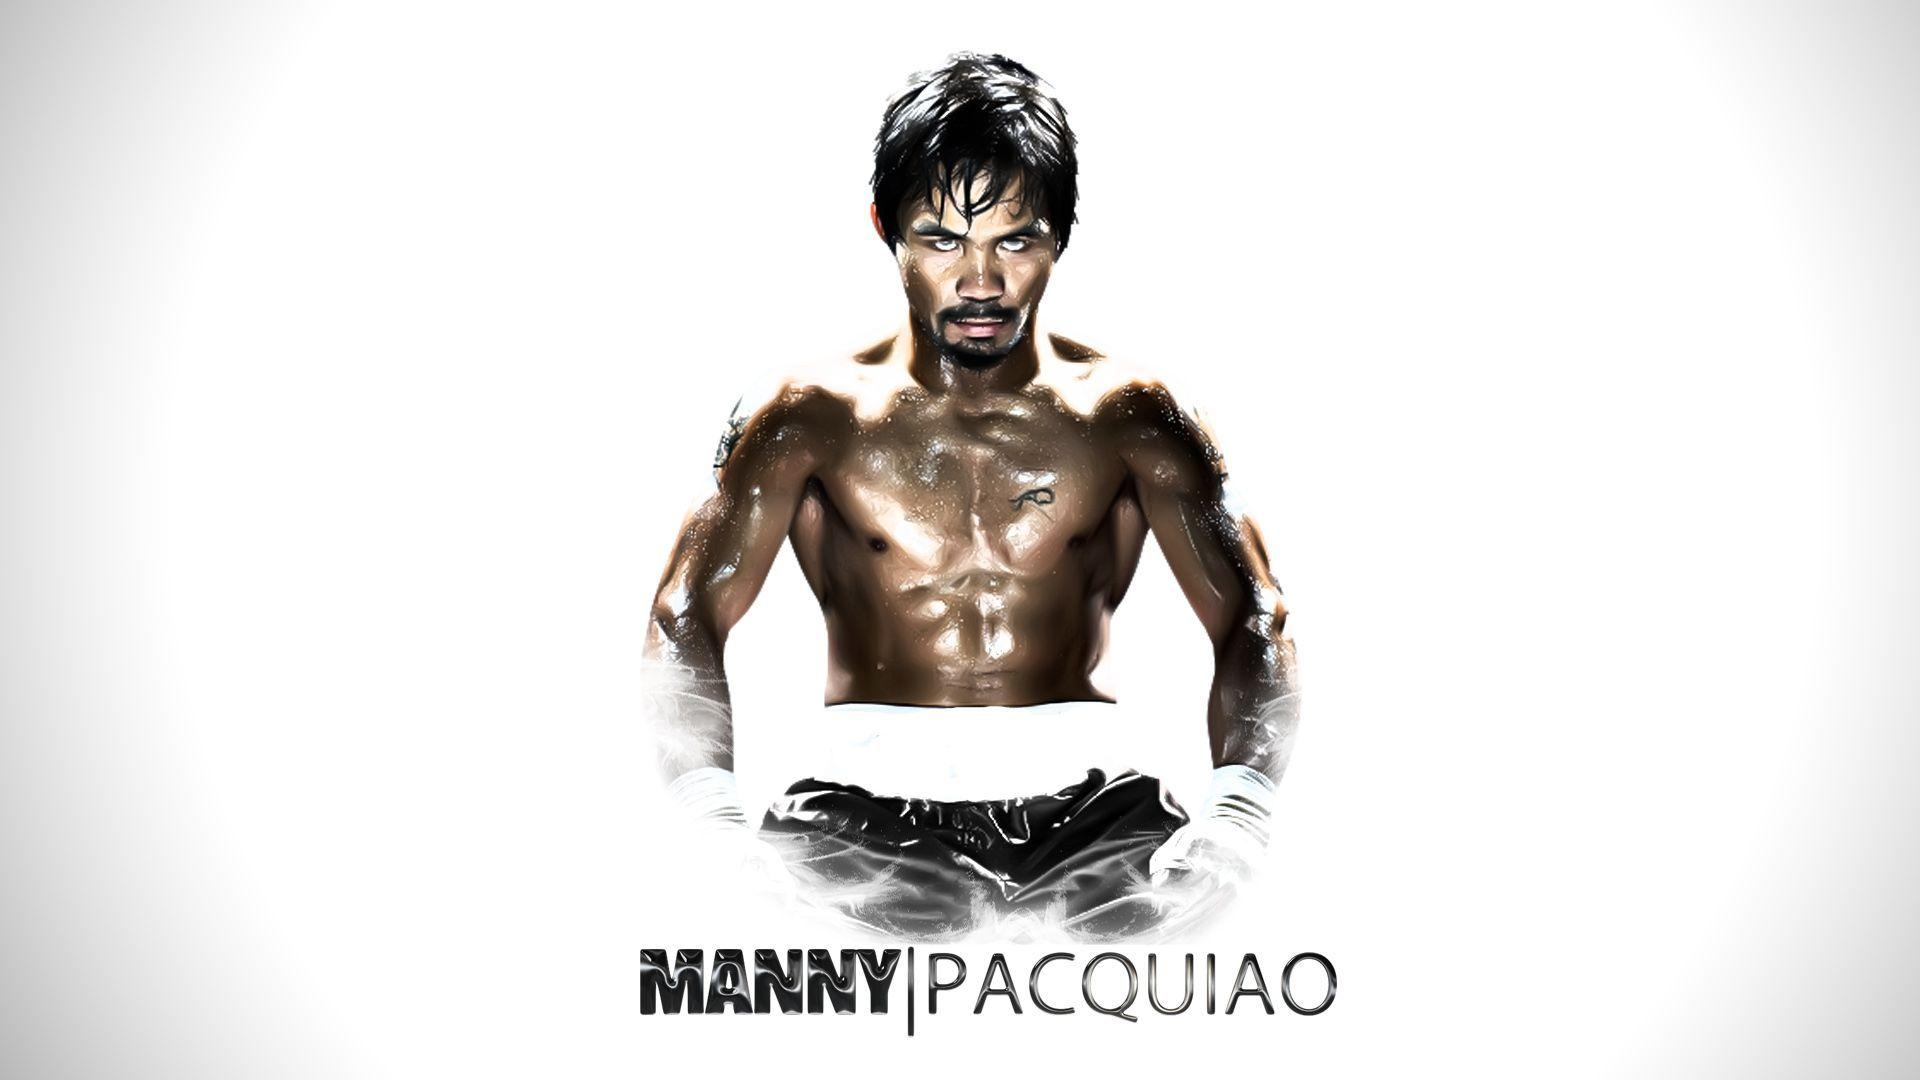 Pacquiao Wallpapers Wallpaper Cave